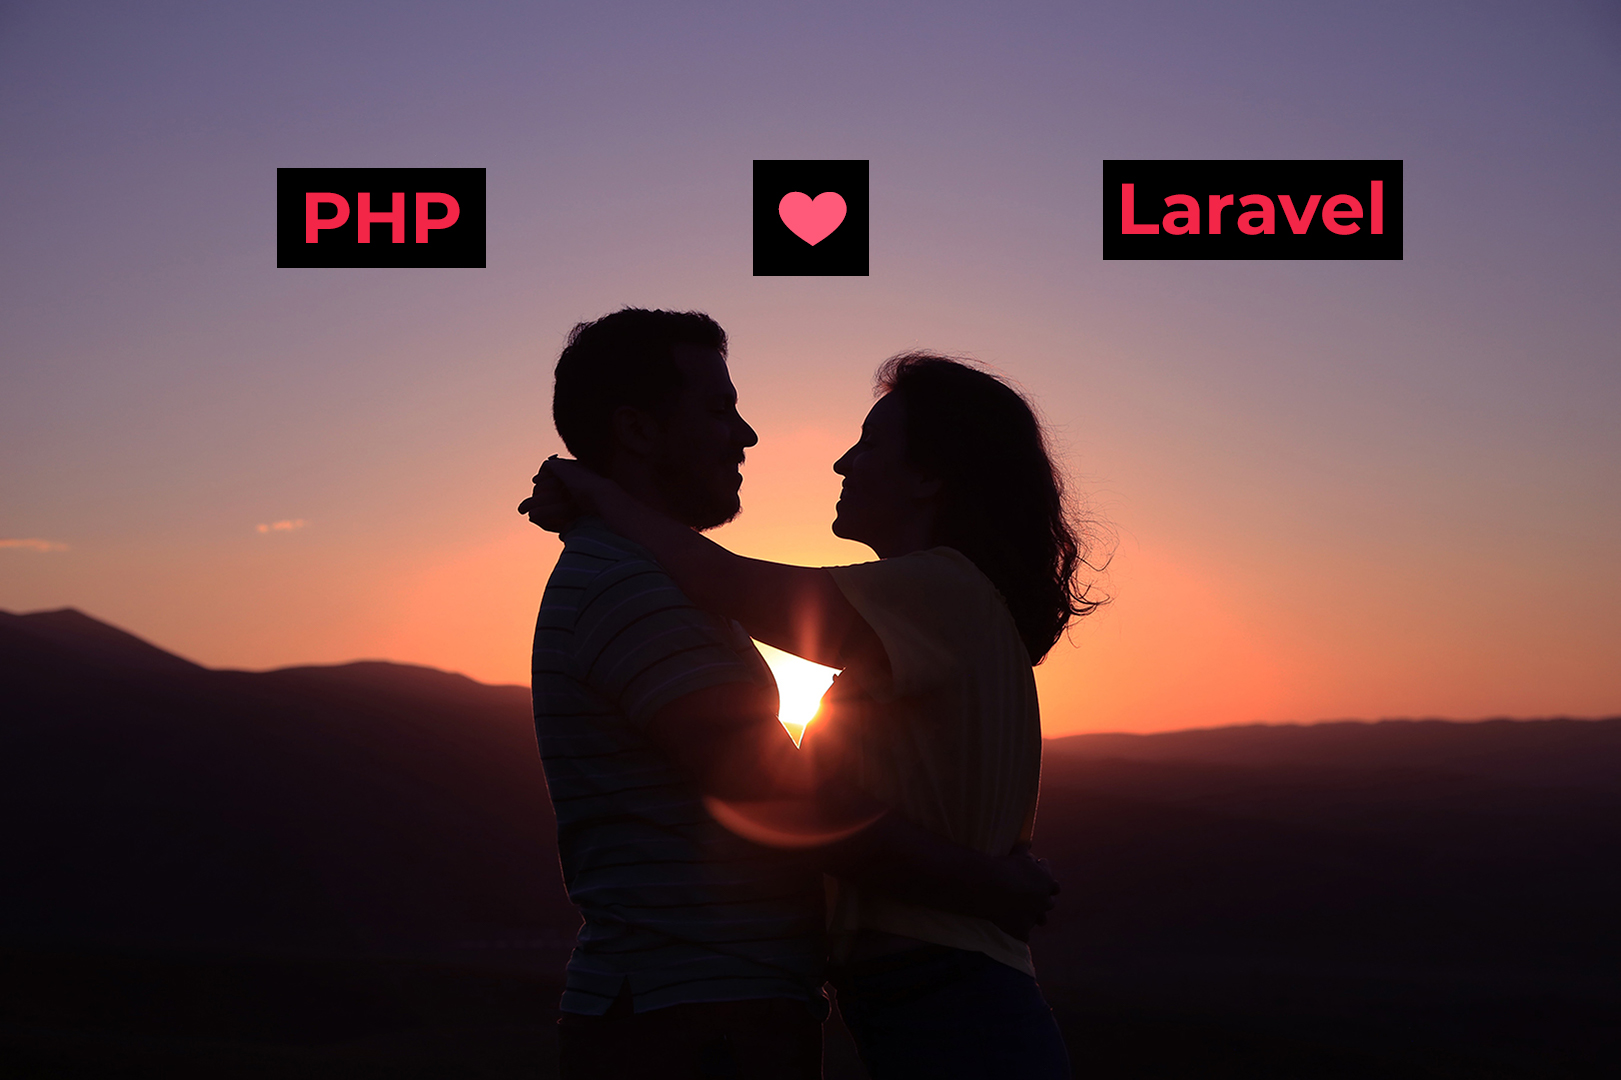 Fall in love with PHP again. Let Laravel be your Valentine cover image